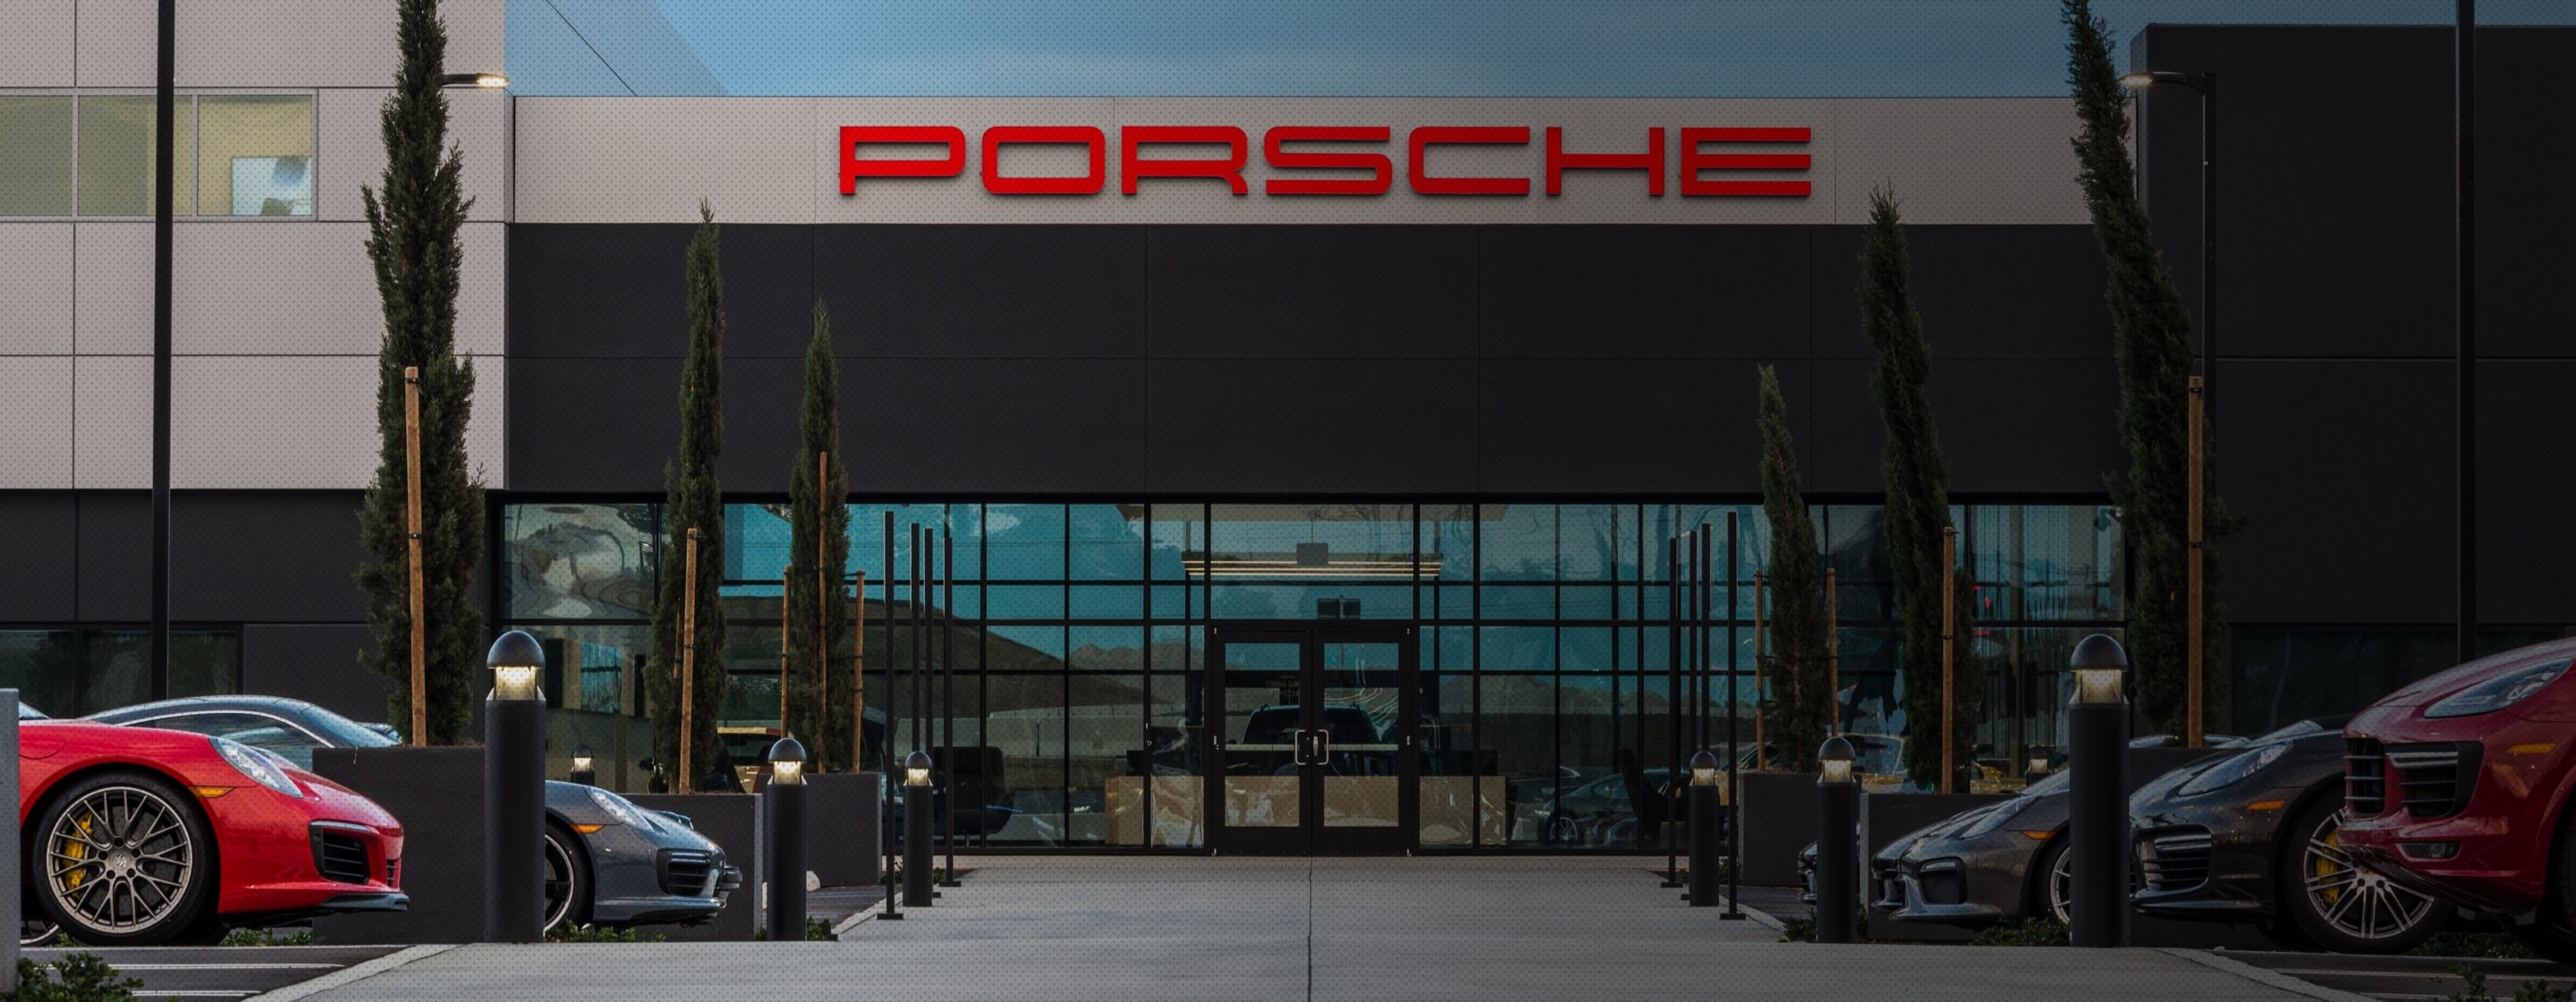 Porsche Experience Center Los Angeles Facilities and Venue New Vehicle desktop